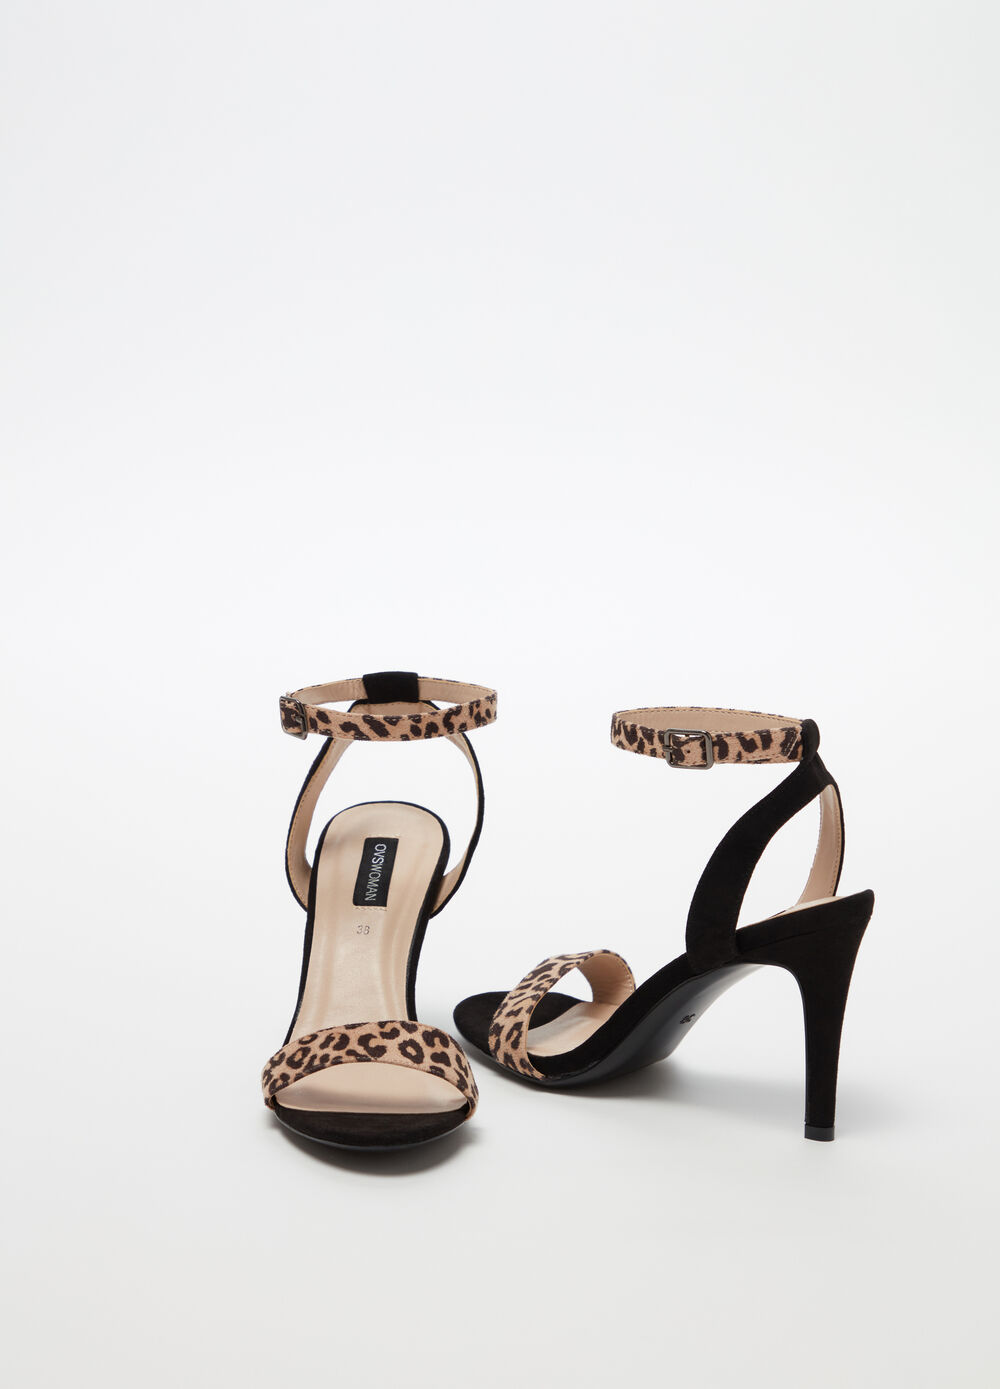 Sandals with animal print strap